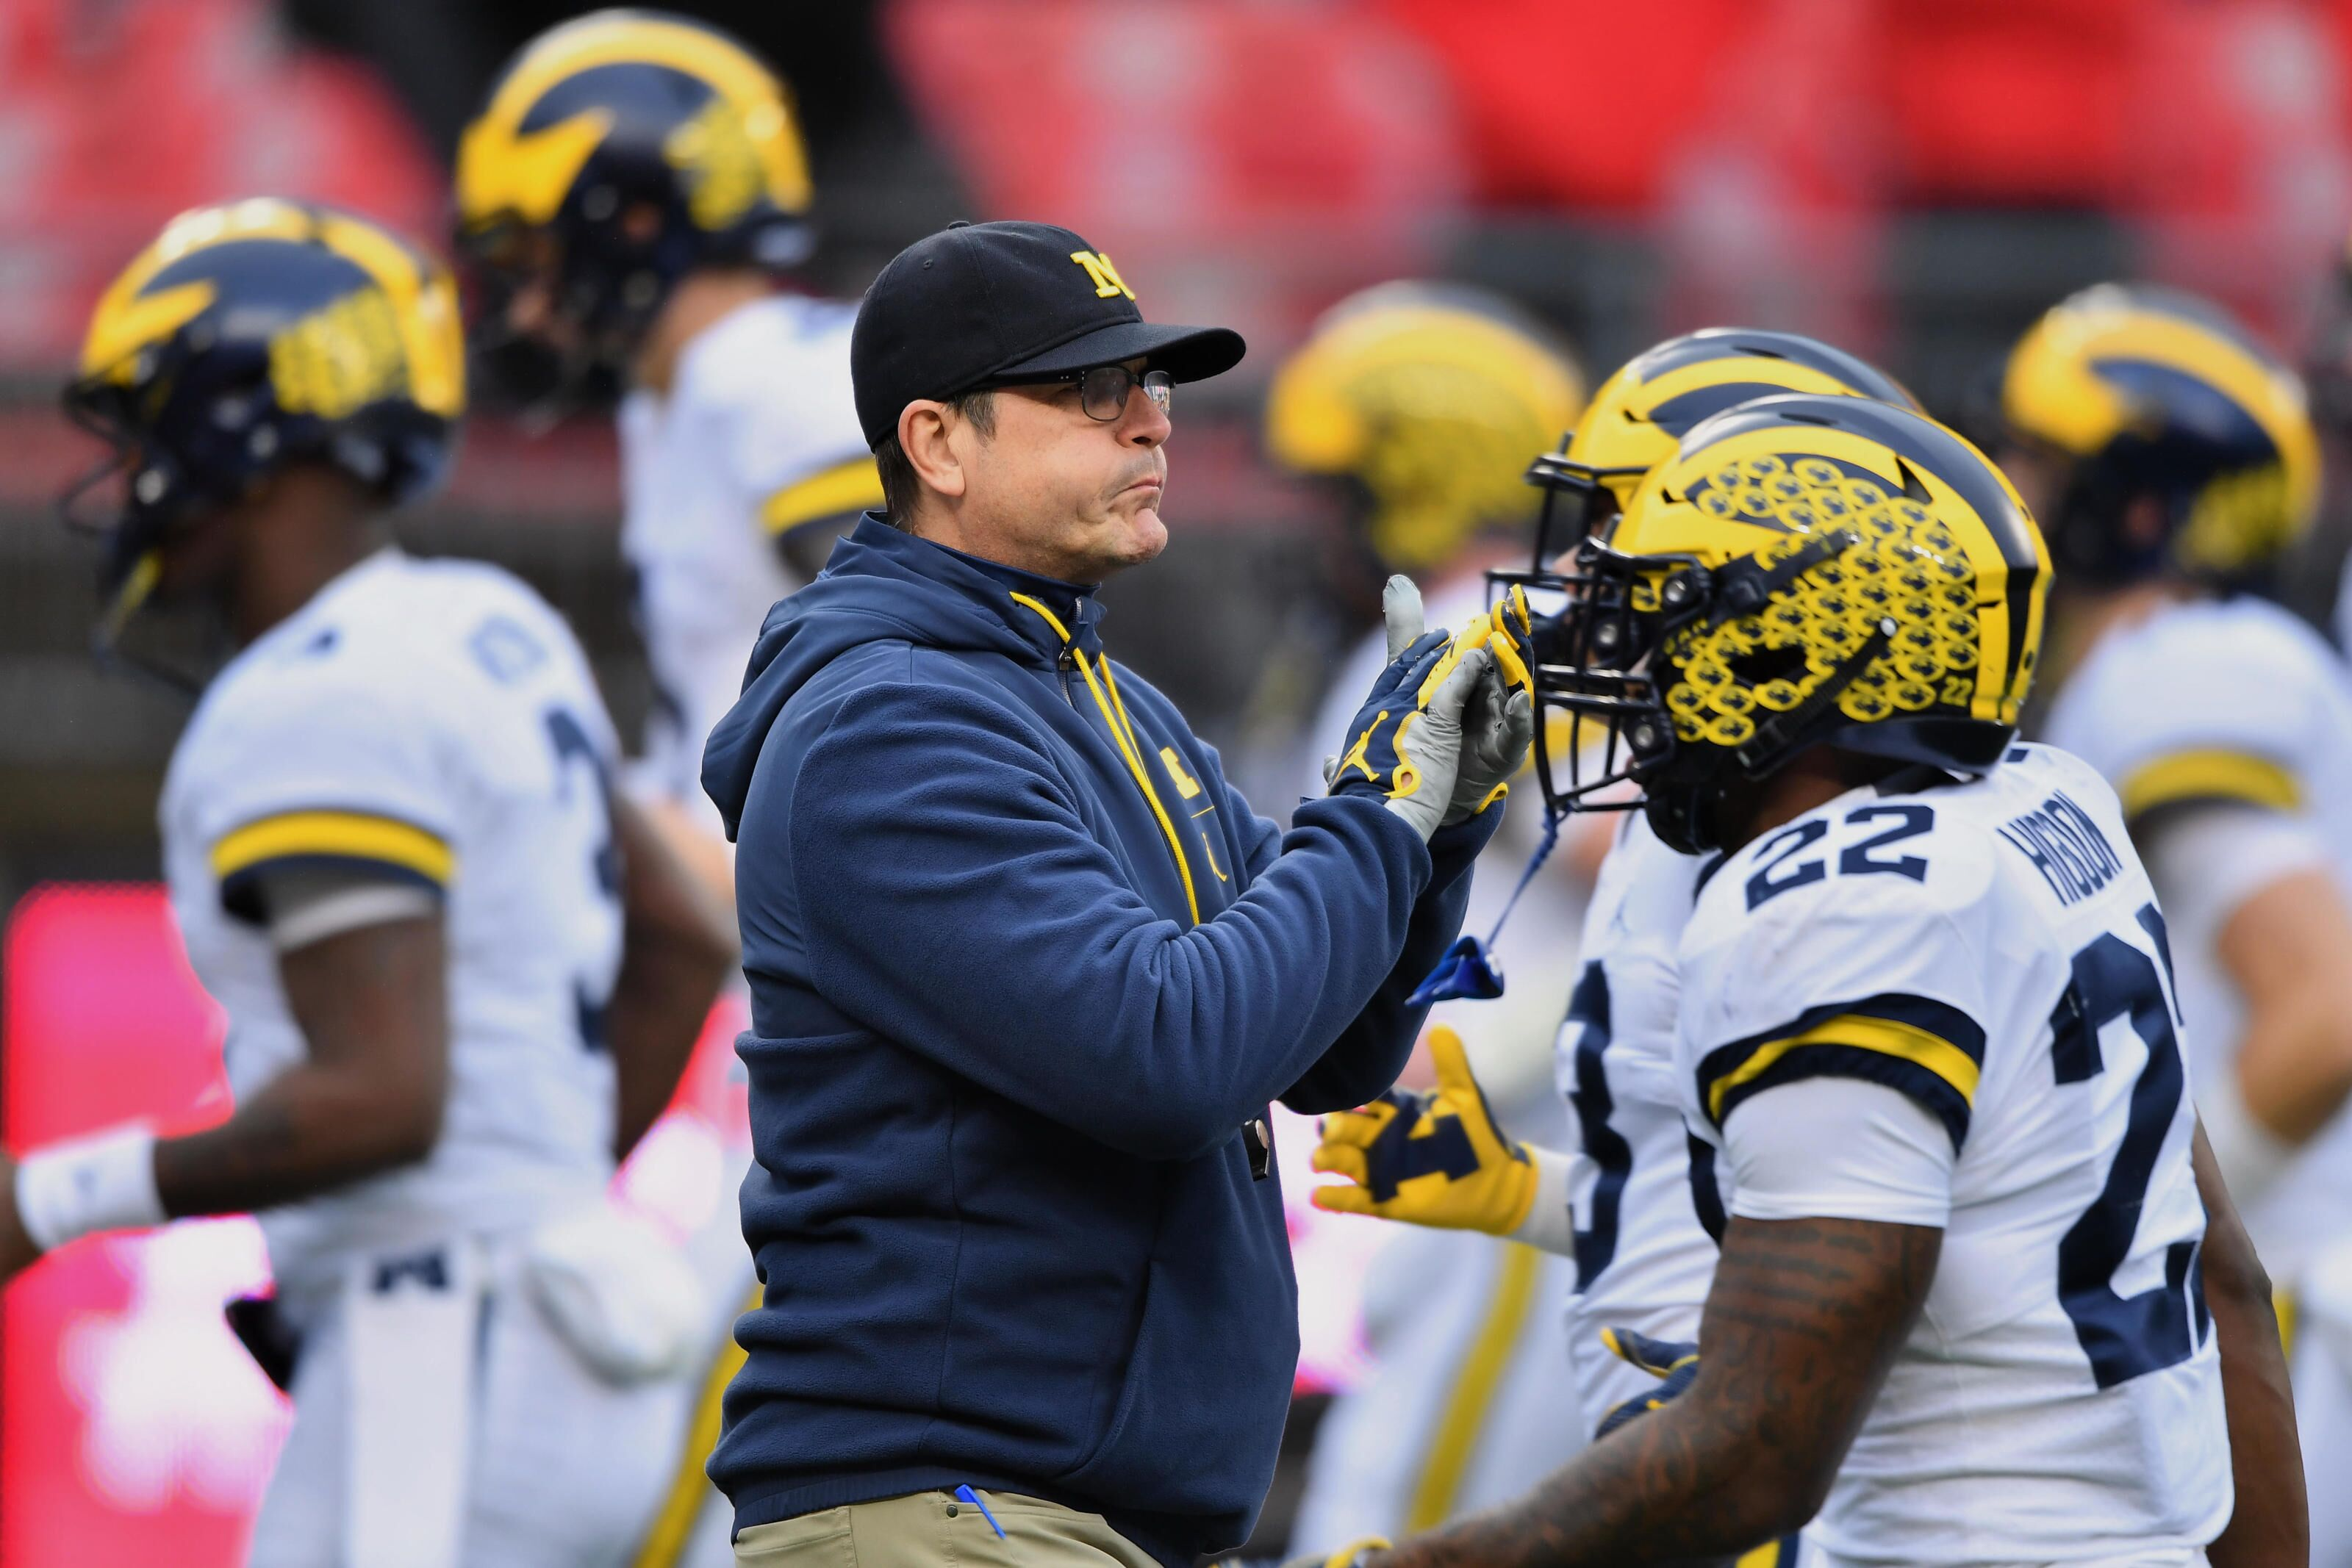 Michigan Football 5 Things We Learned From Wolverines Loss To Ohio